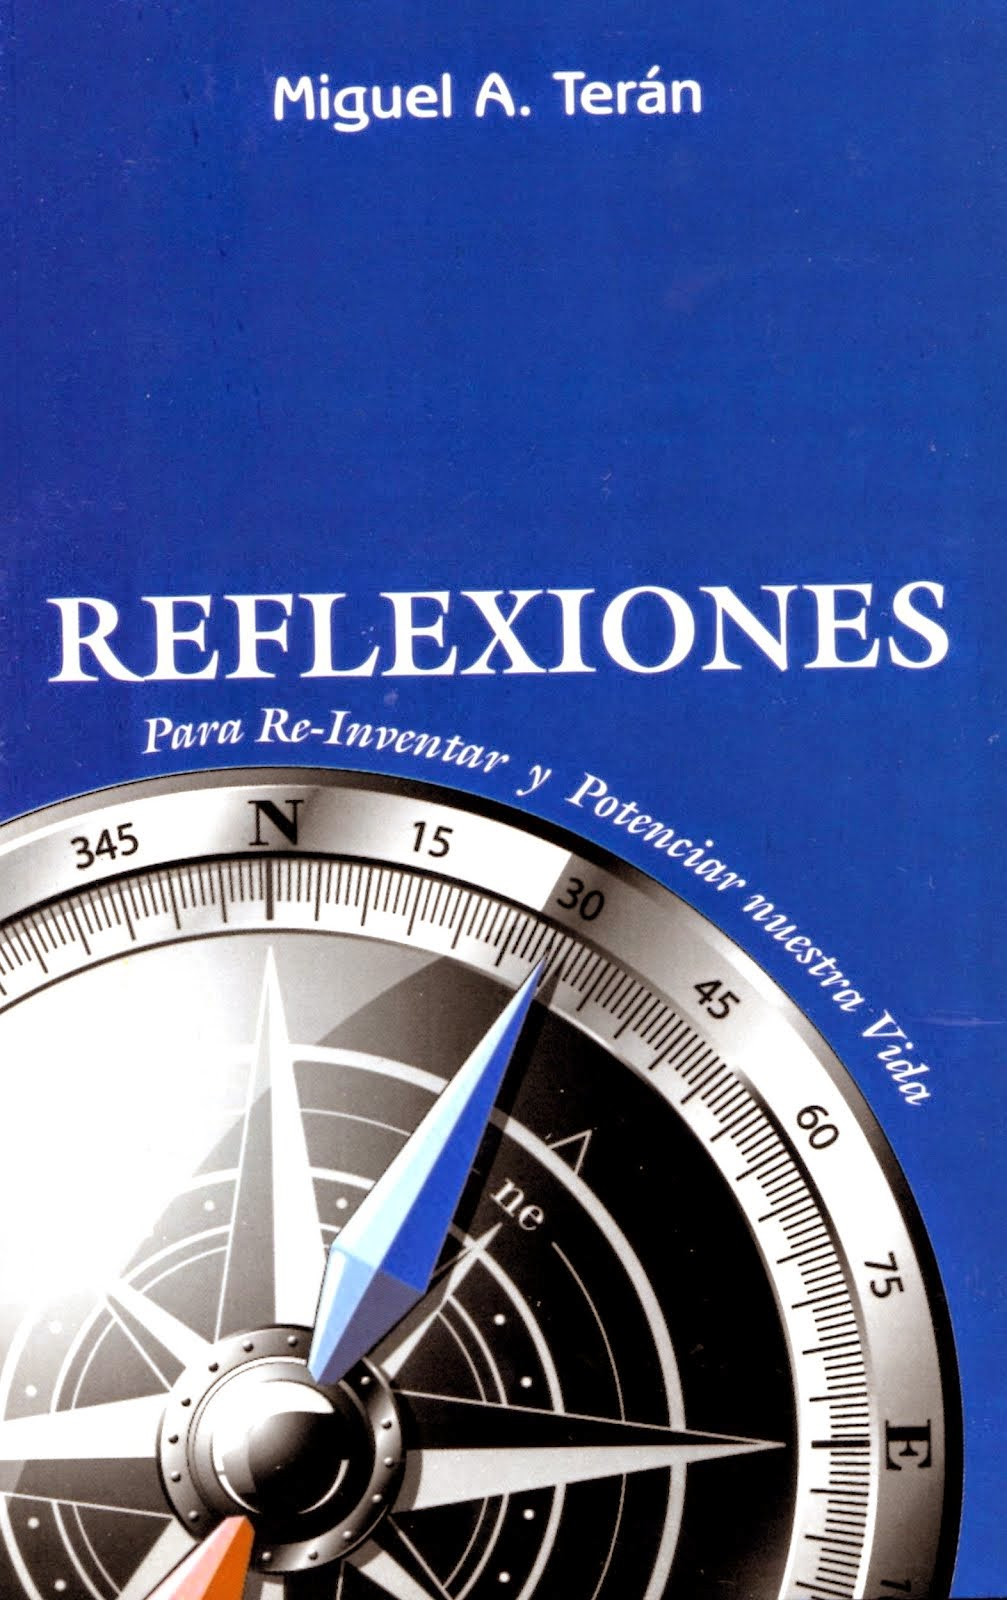 Libro disponible en venta: www.amazon.com